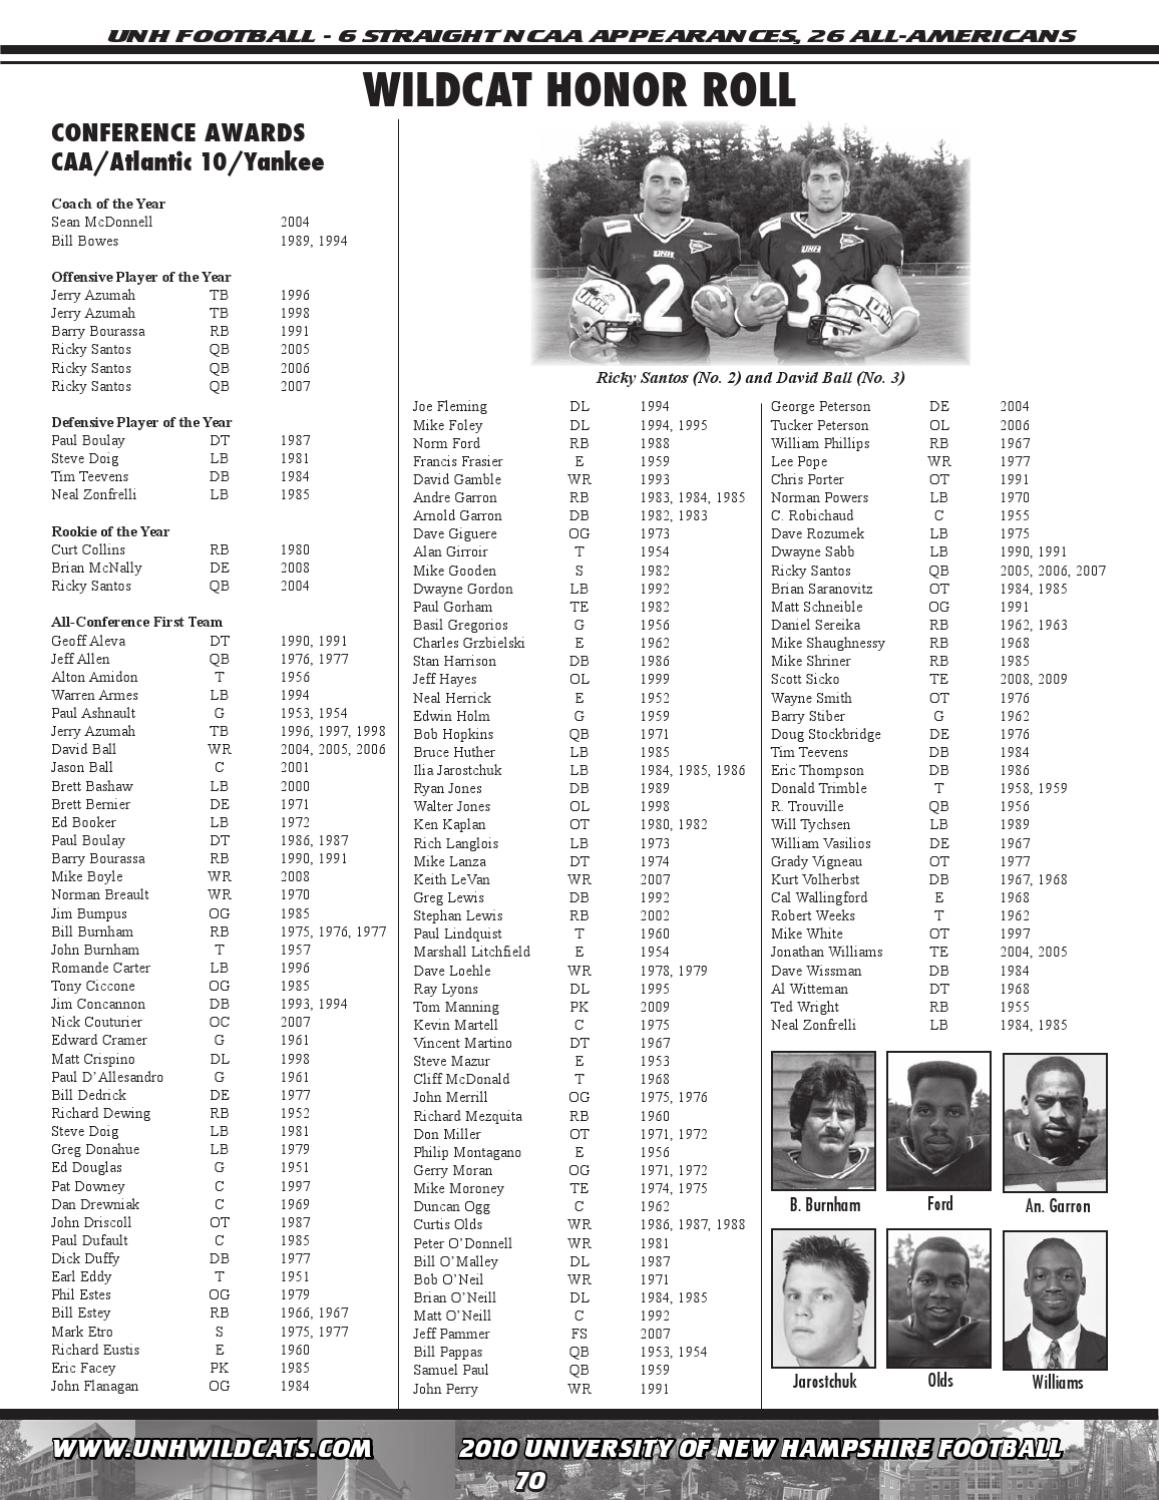 2010 New Hampshire Football Media Guide by University of